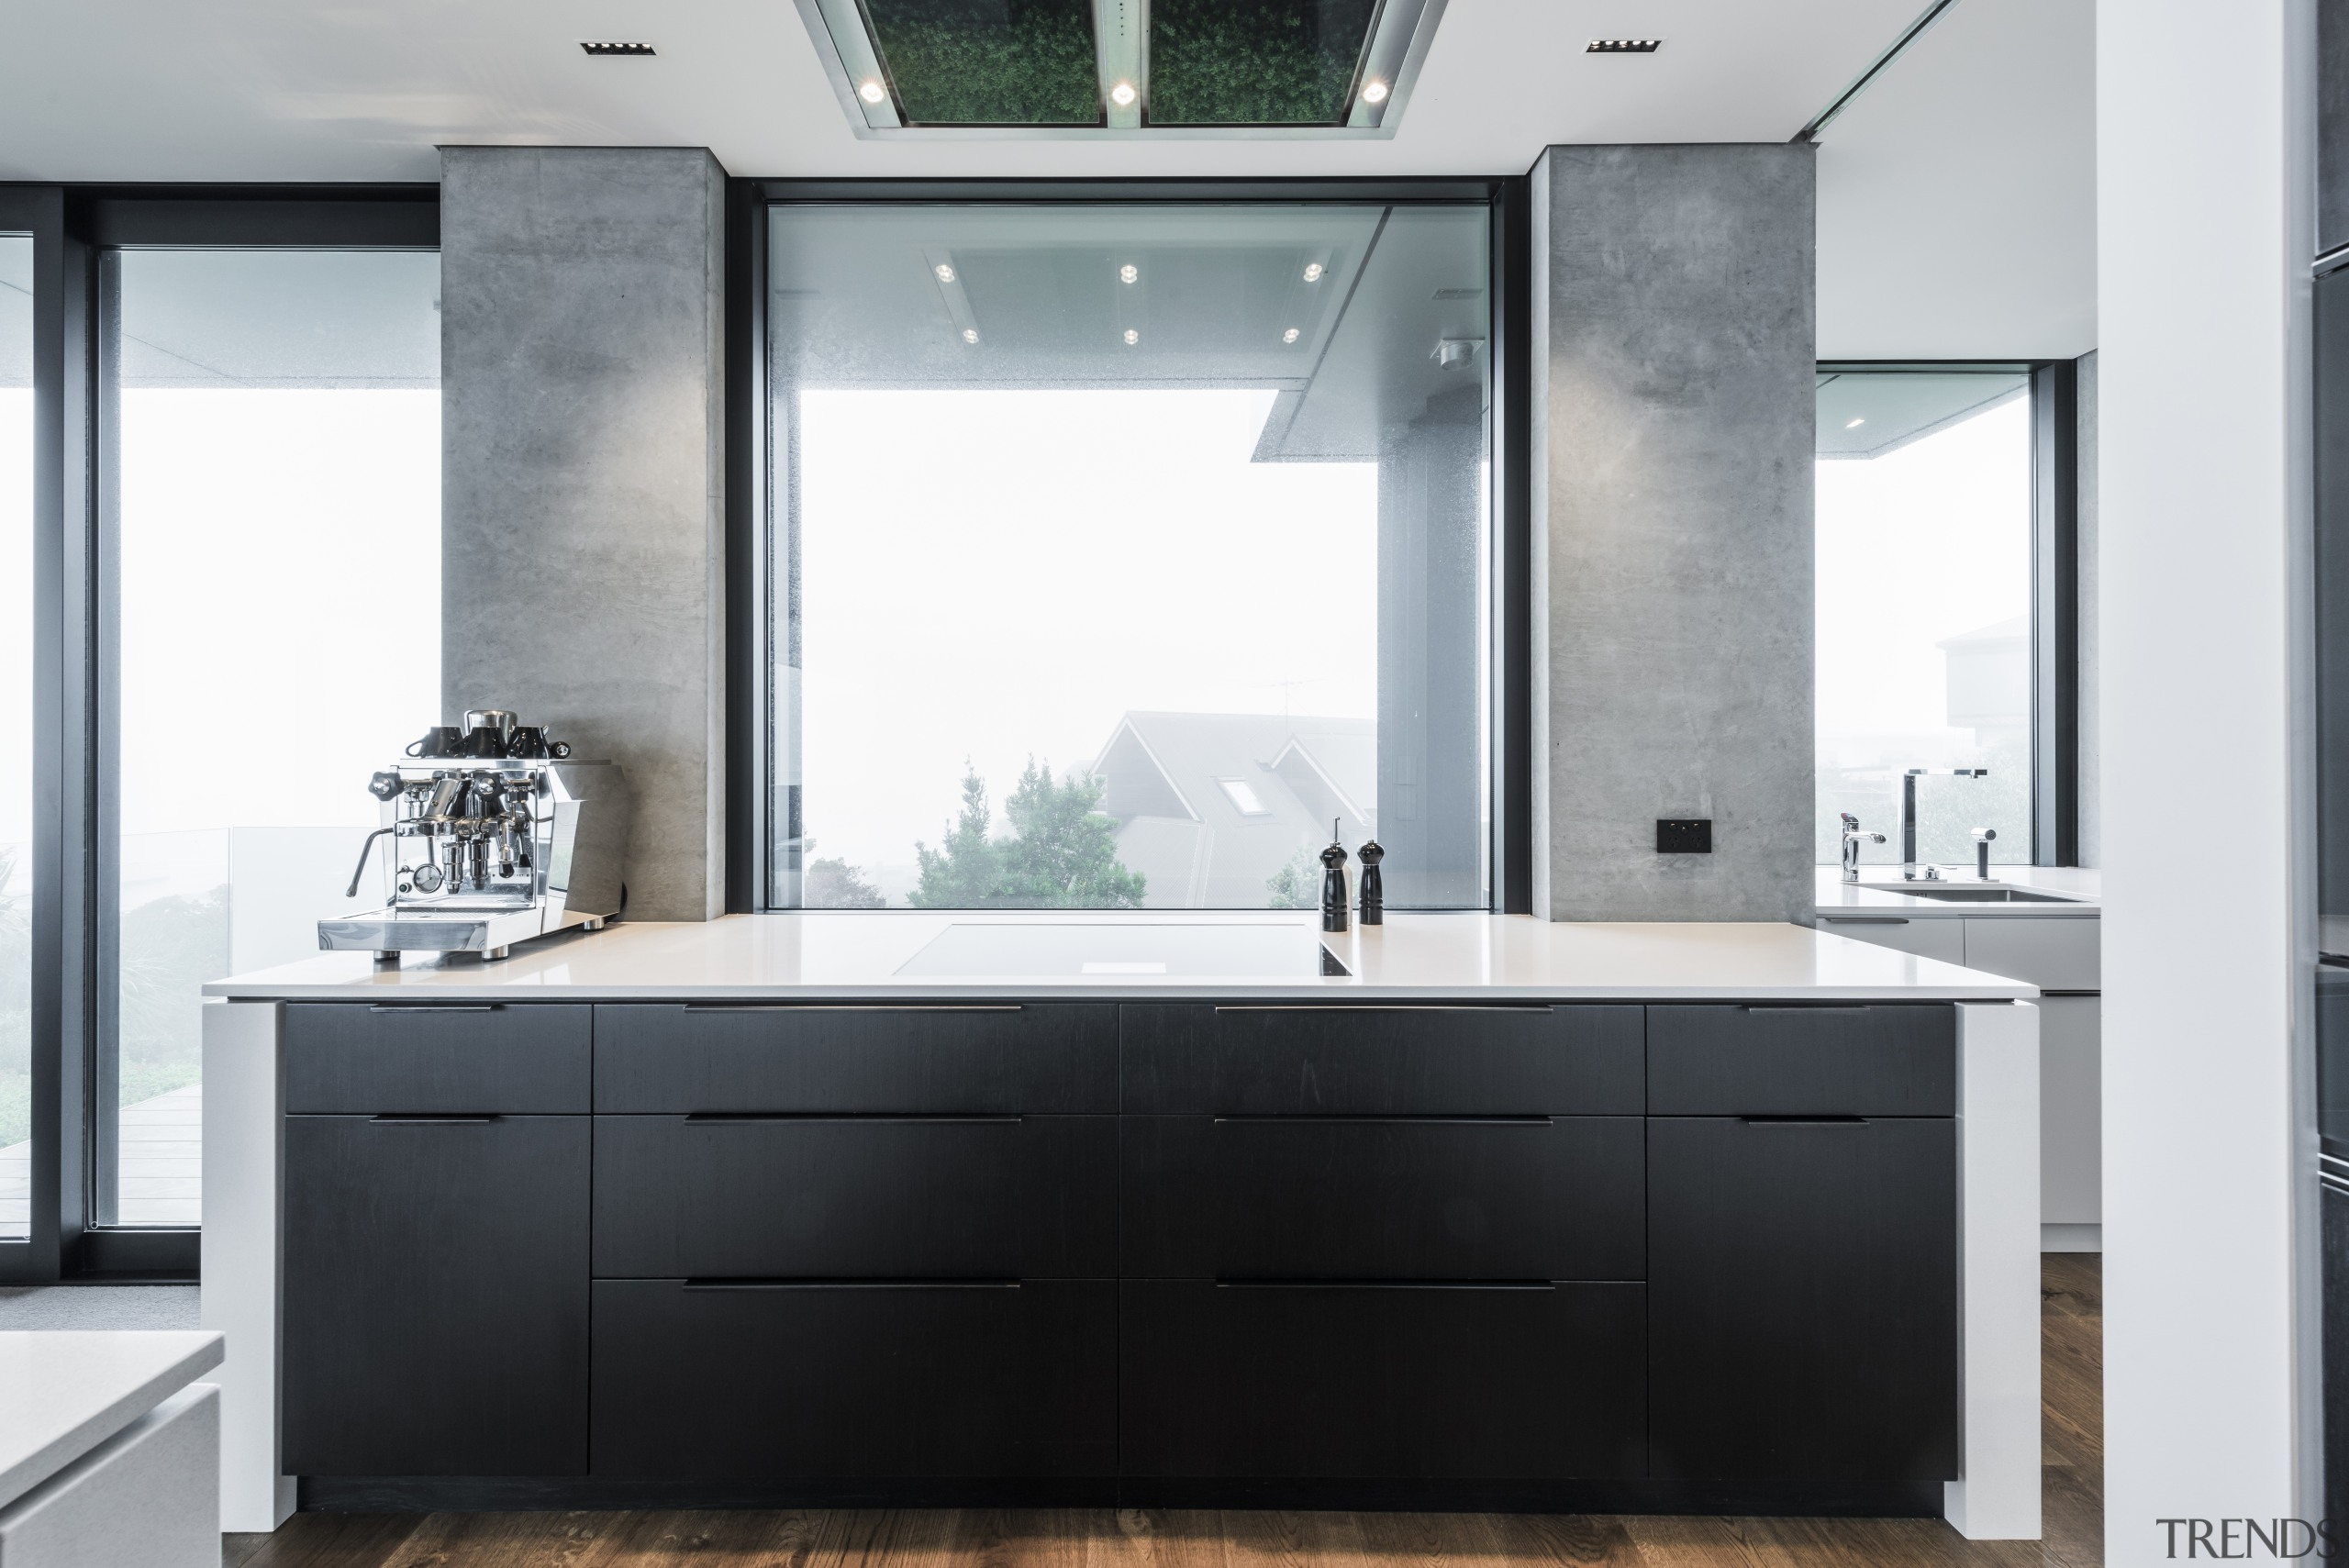 ​​​​​​​Positioned to the side of this kitchen, the bathroom, bathroom accessory, bathroom cabinet, countertop, interior design, kitchen, sink, gray, black, white